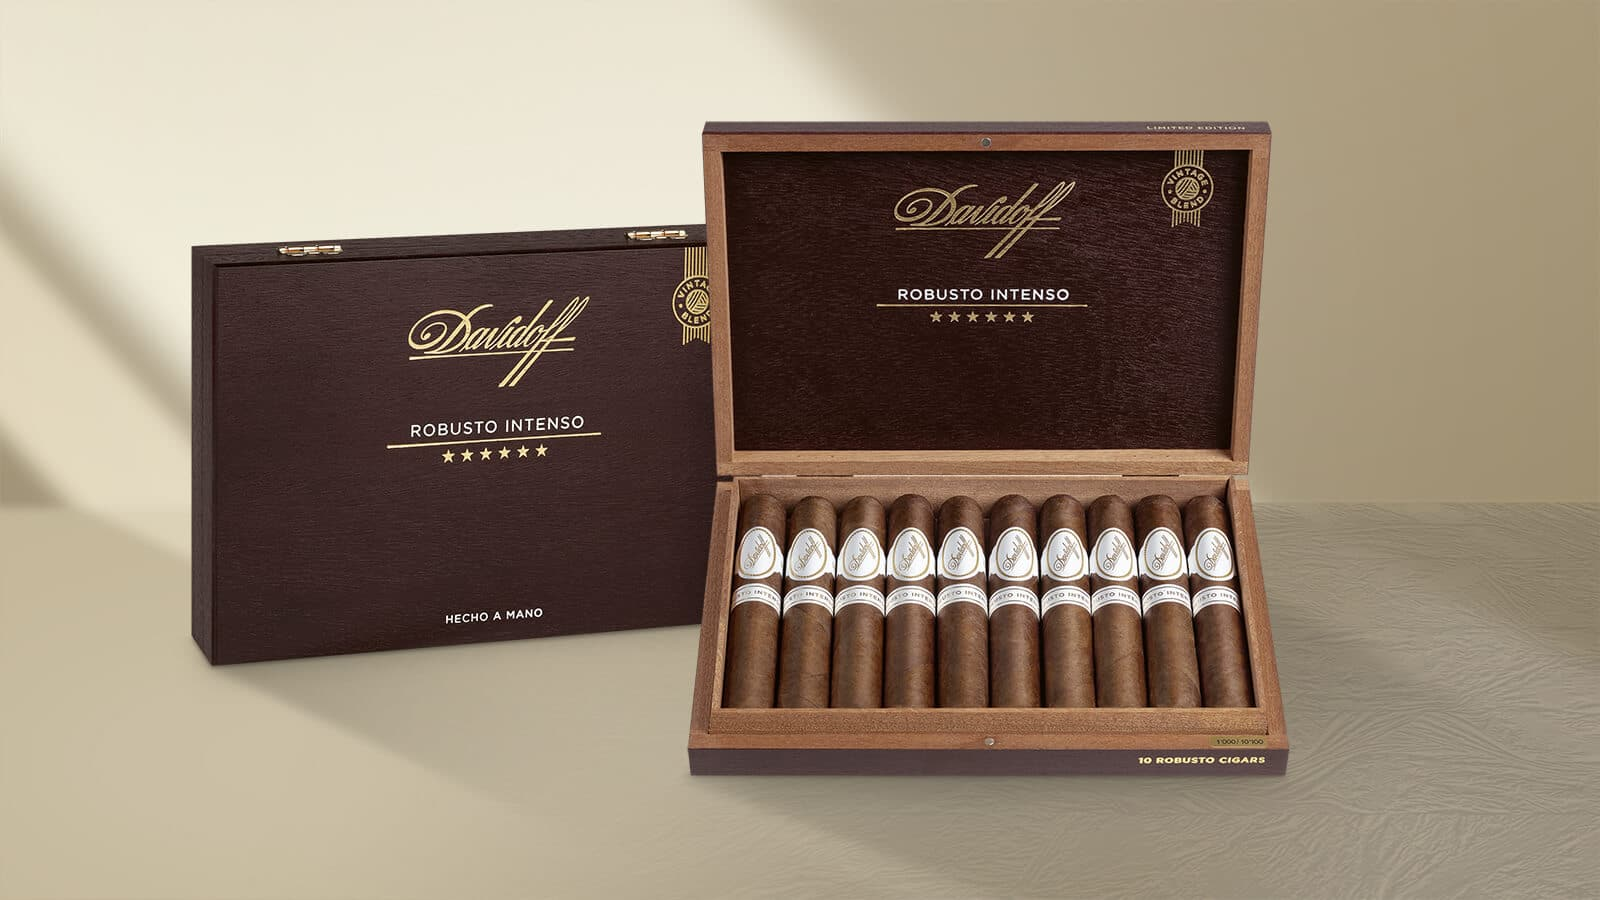 Davidoff Limited Edition Robusto Intenso